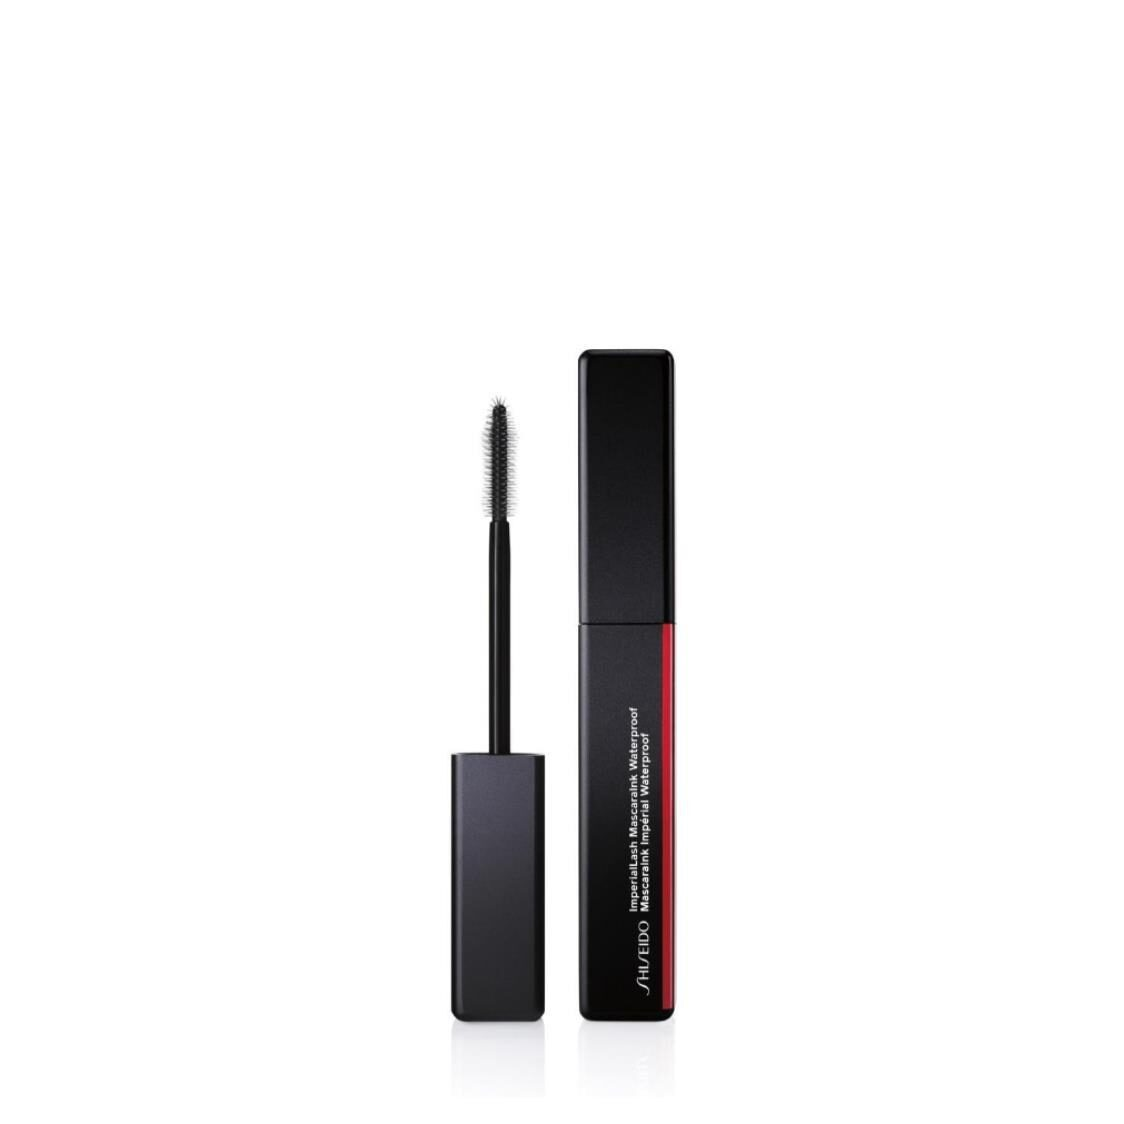 Makeup ImperialLash MascaraInk Waterproof 01 Sumi Black